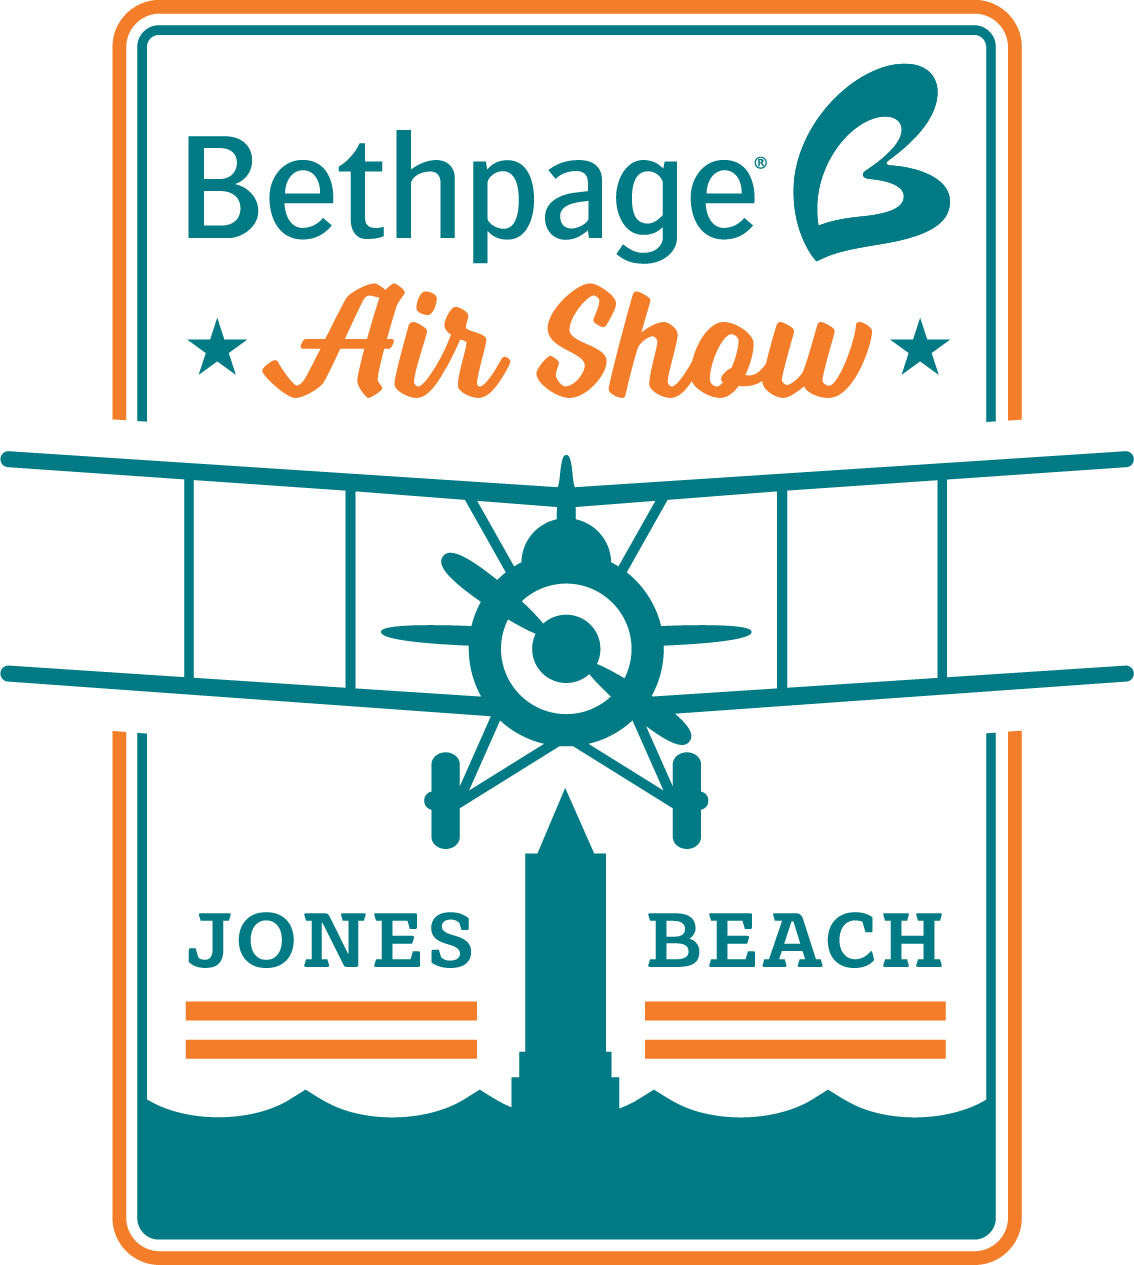 Bethpage Airshow 2017